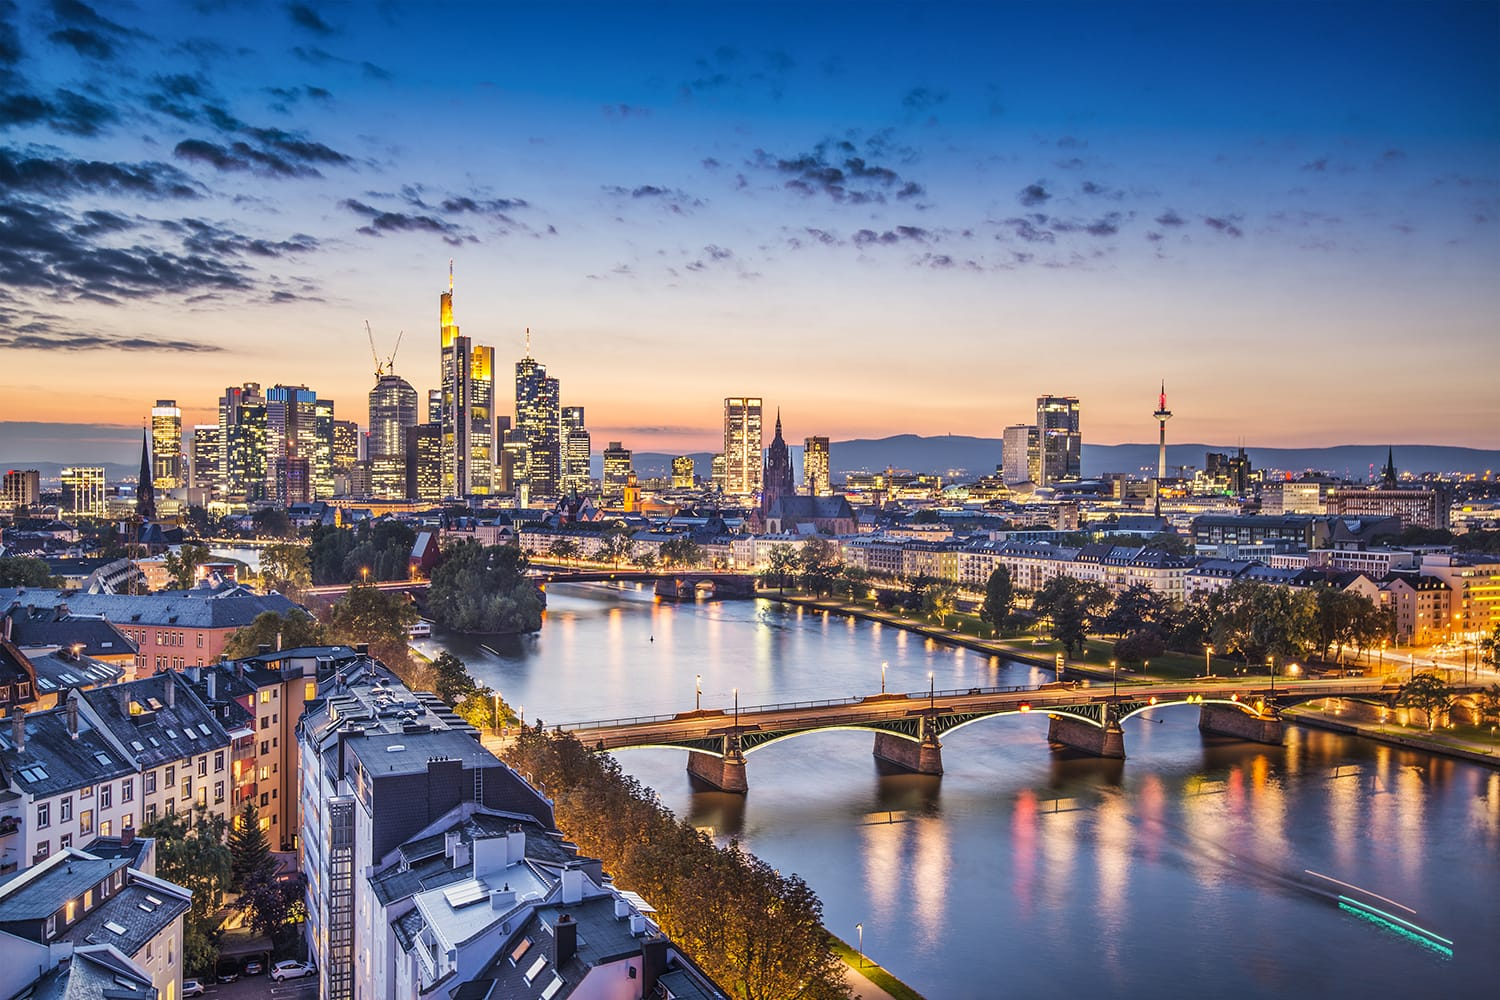 Skyline of Frankfurt, Germany at sunset